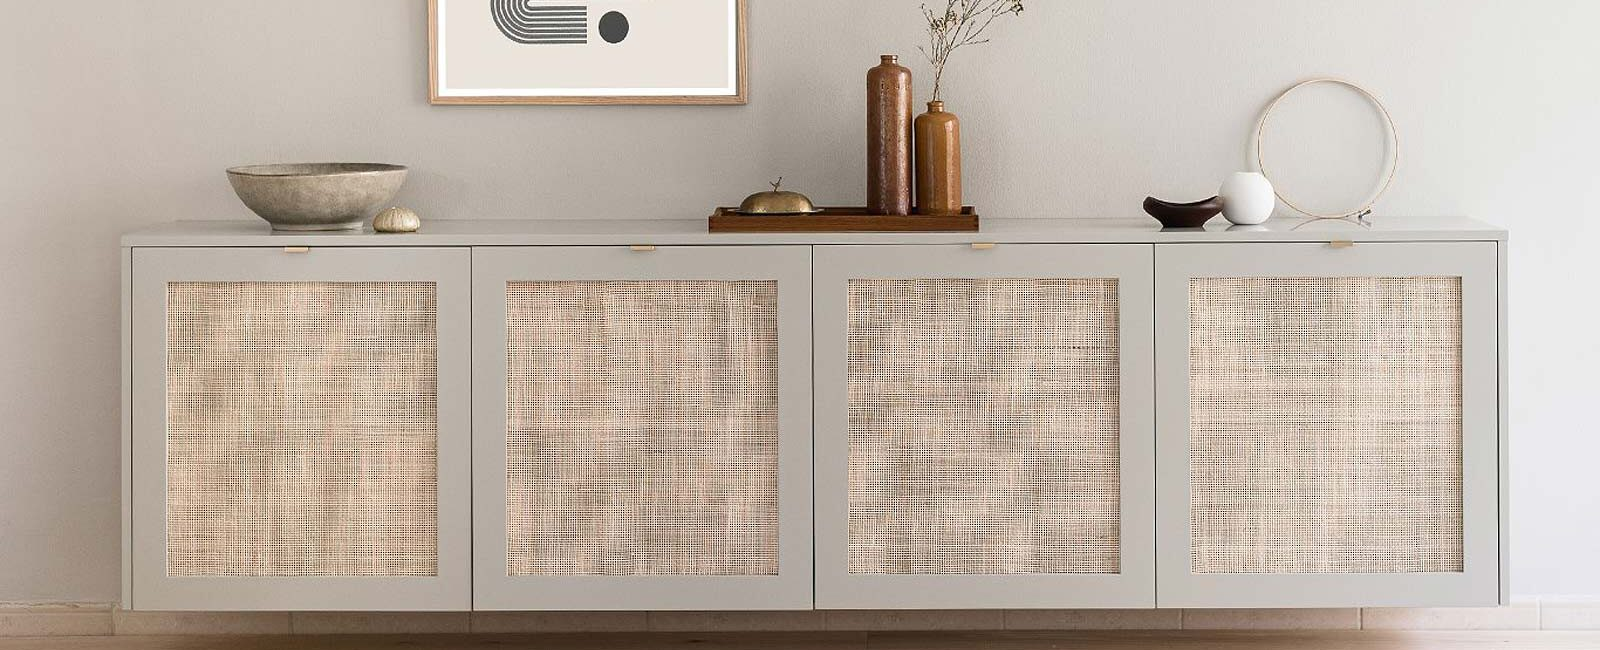 Ikea's furniture hacking with Fronteriors